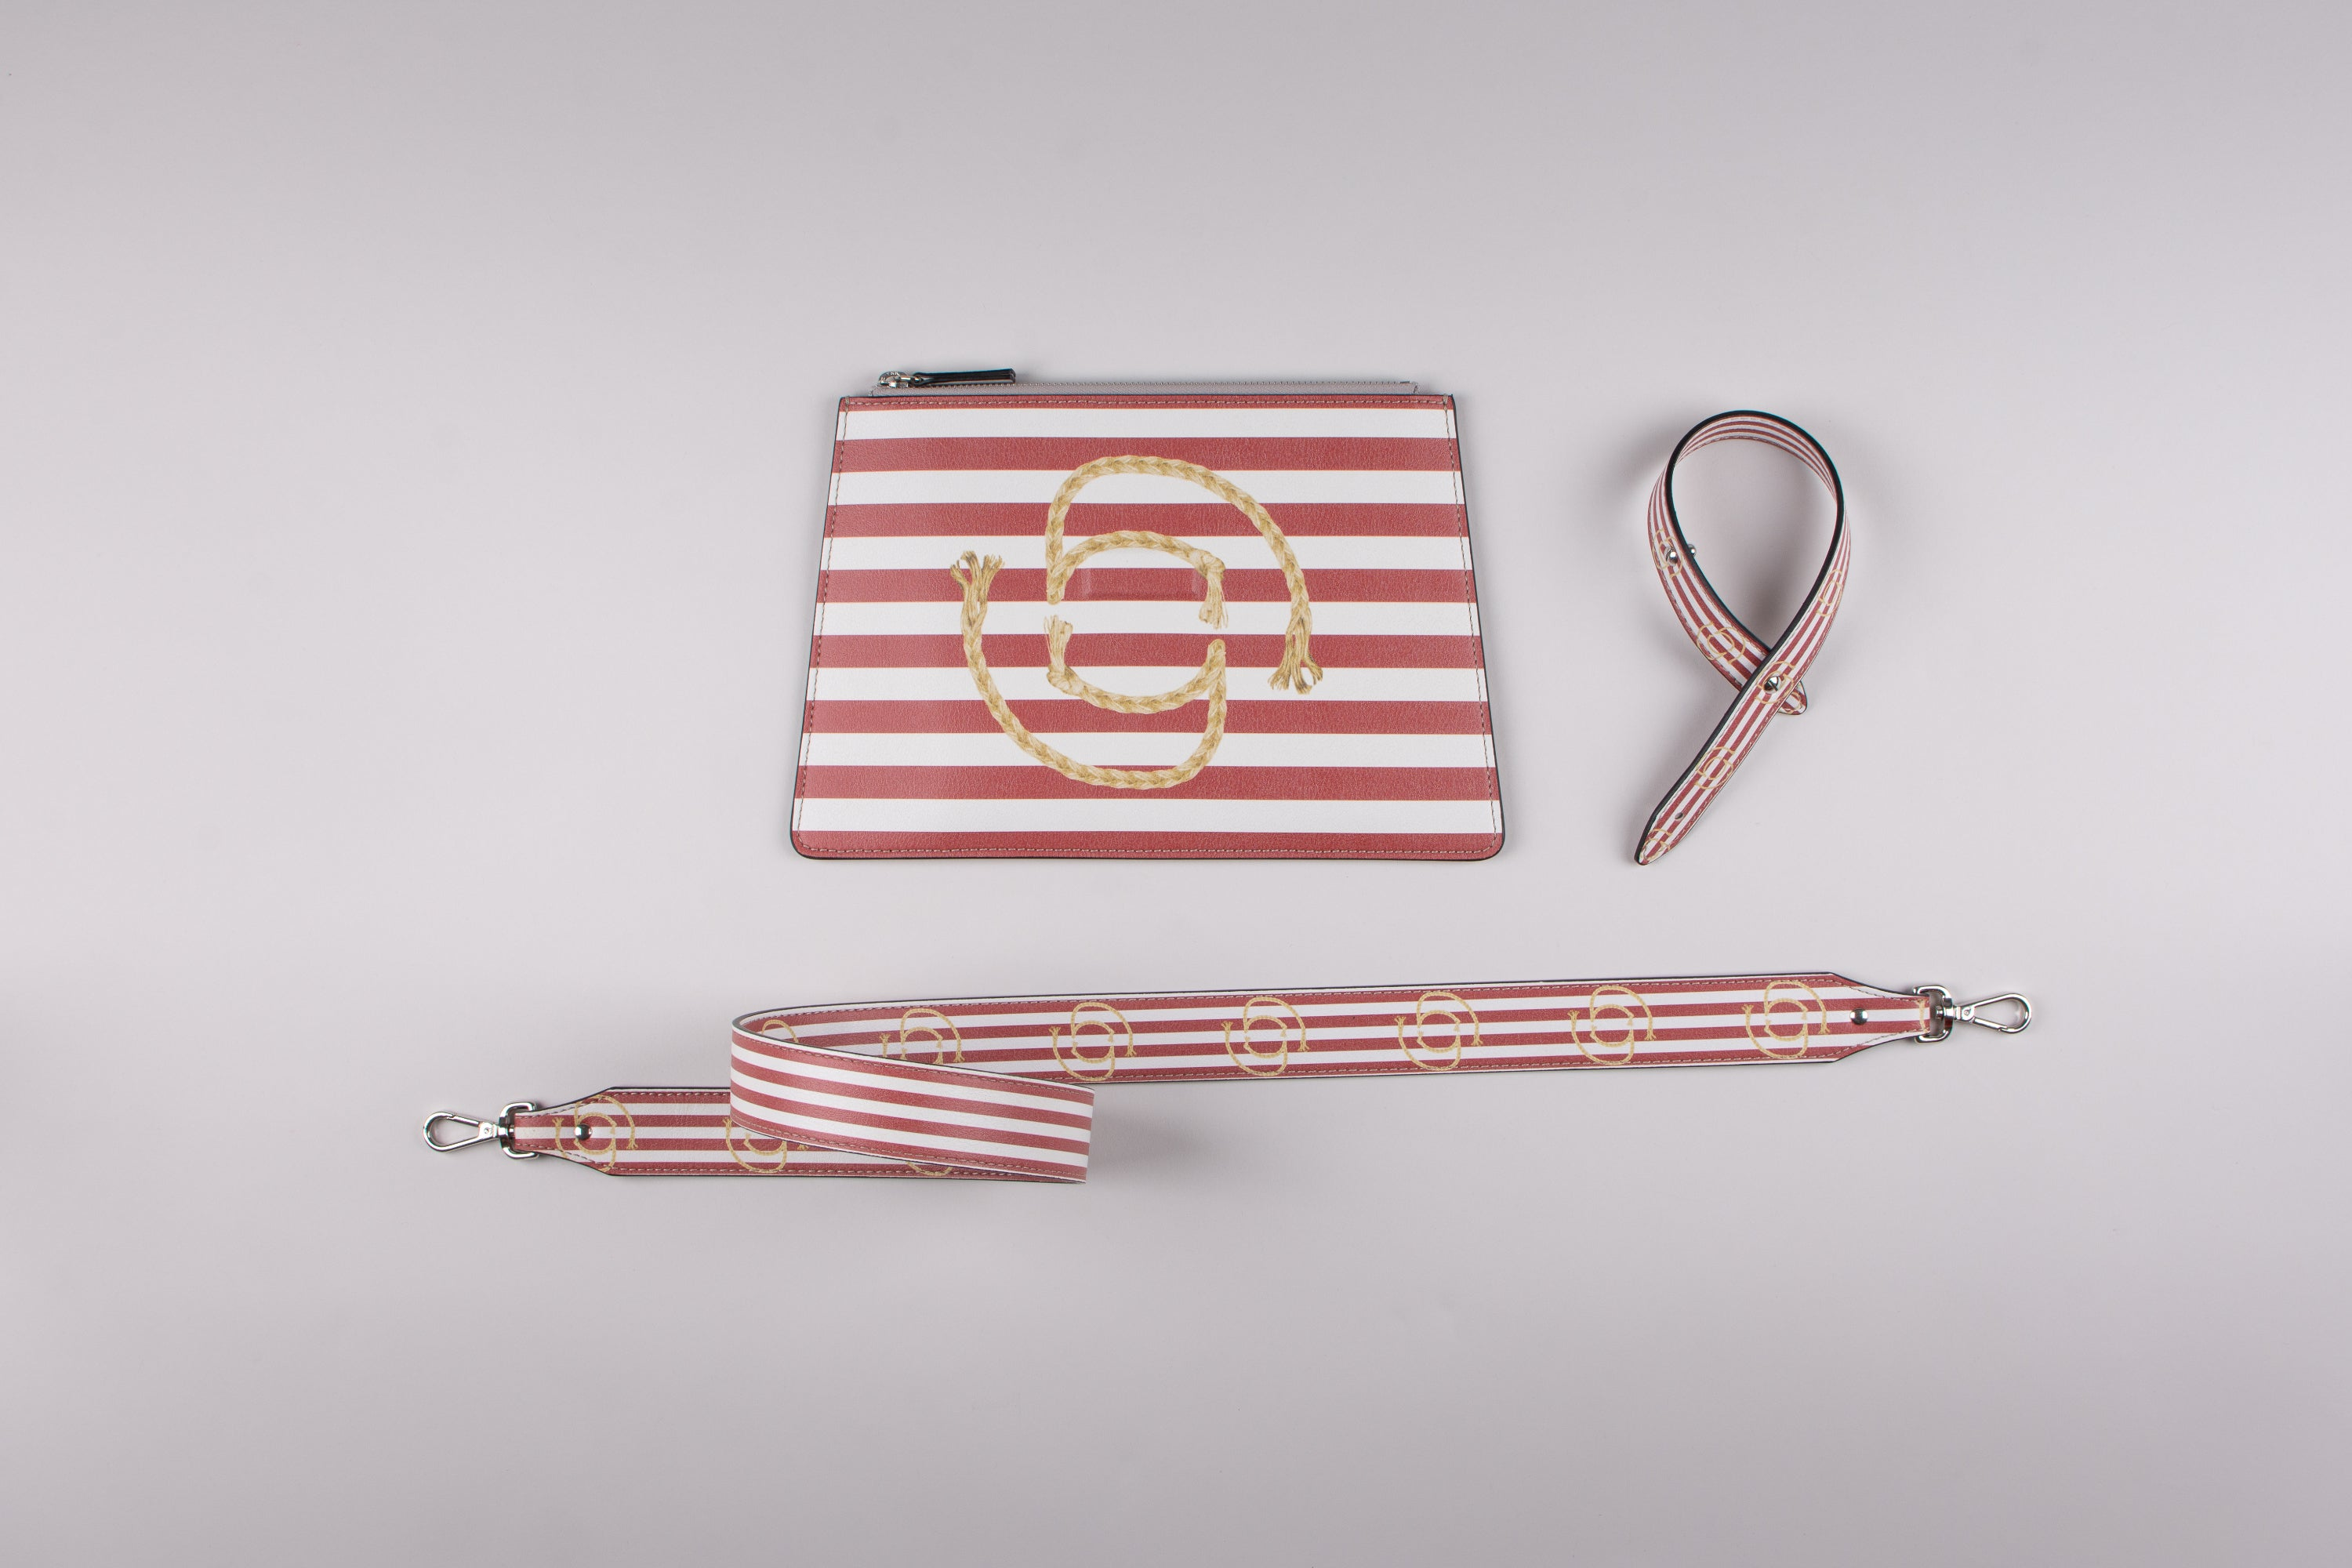 happy genie bag, happy genie, luxury bag, apple bag, apple skin, apple leather, vegan leather, multifunctional bag, clutch set, stripes, red, marine, innovative material.